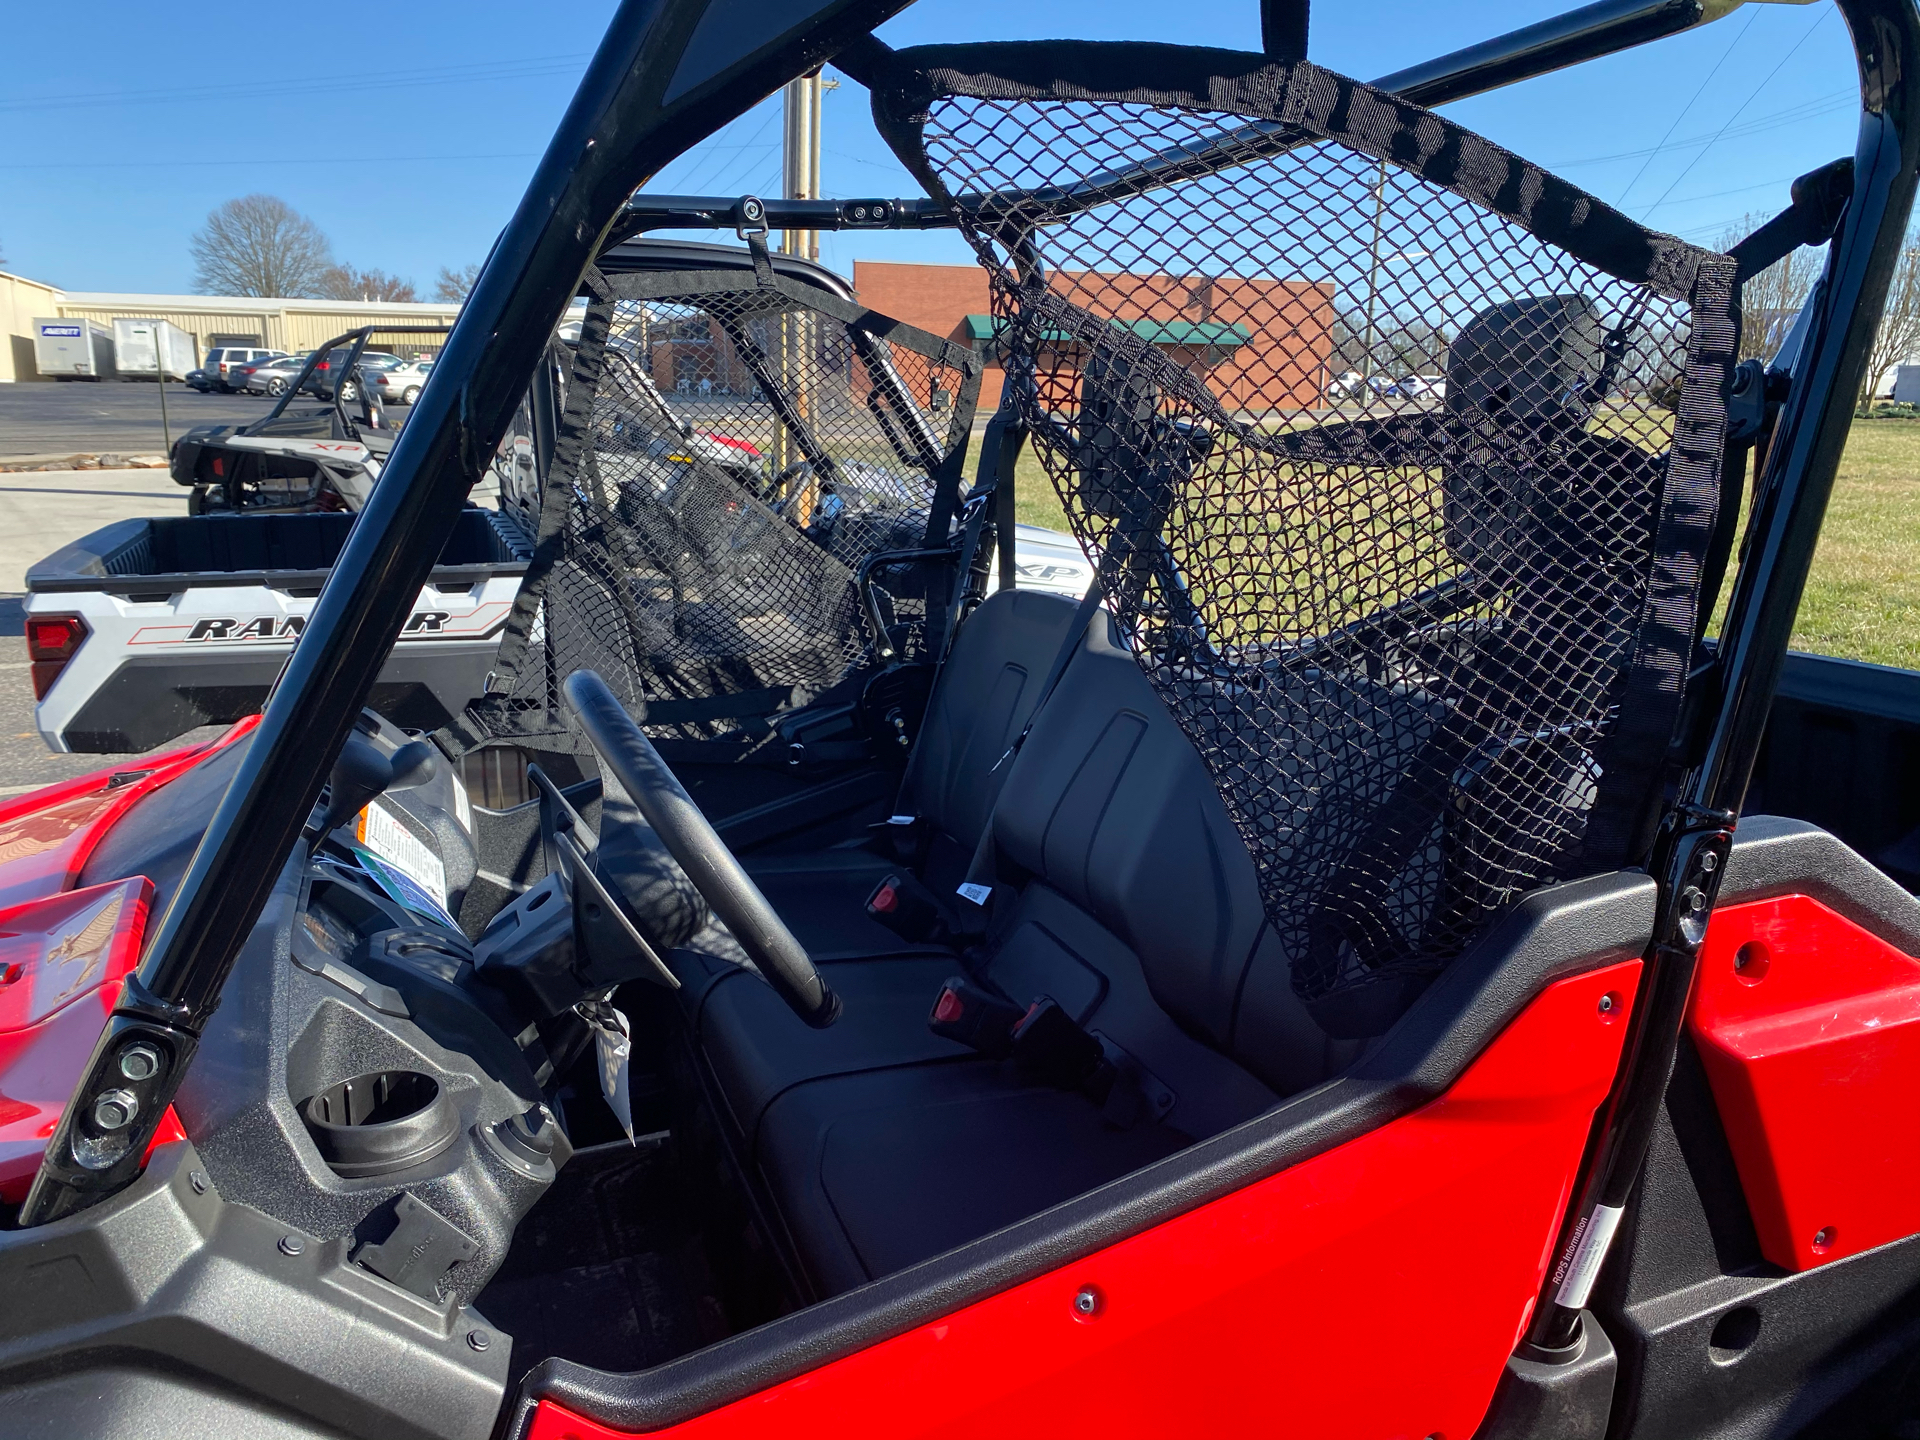 2021 Honda Pioneer 1000 Deluxe in Statesville, North Carolina - Photo 5